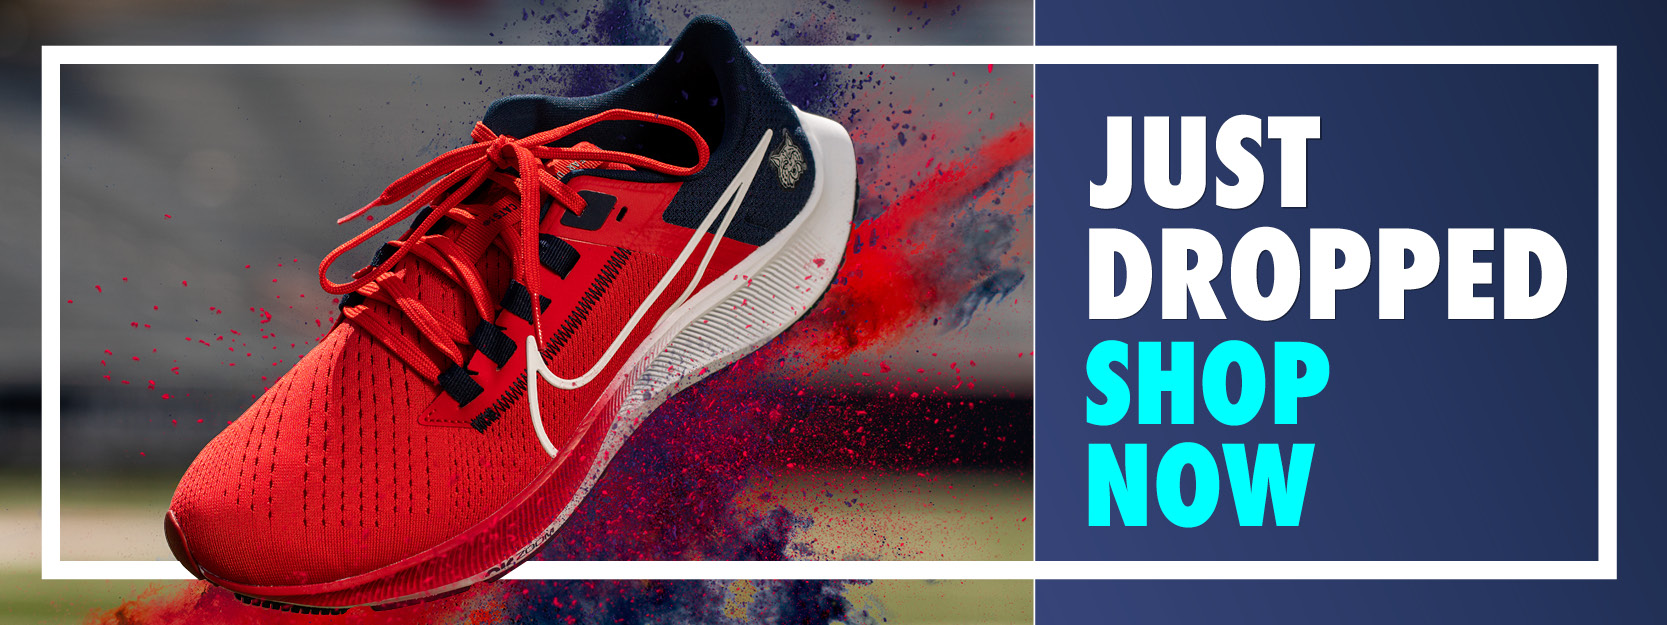 Arzona Nike Shoe Just Dropped